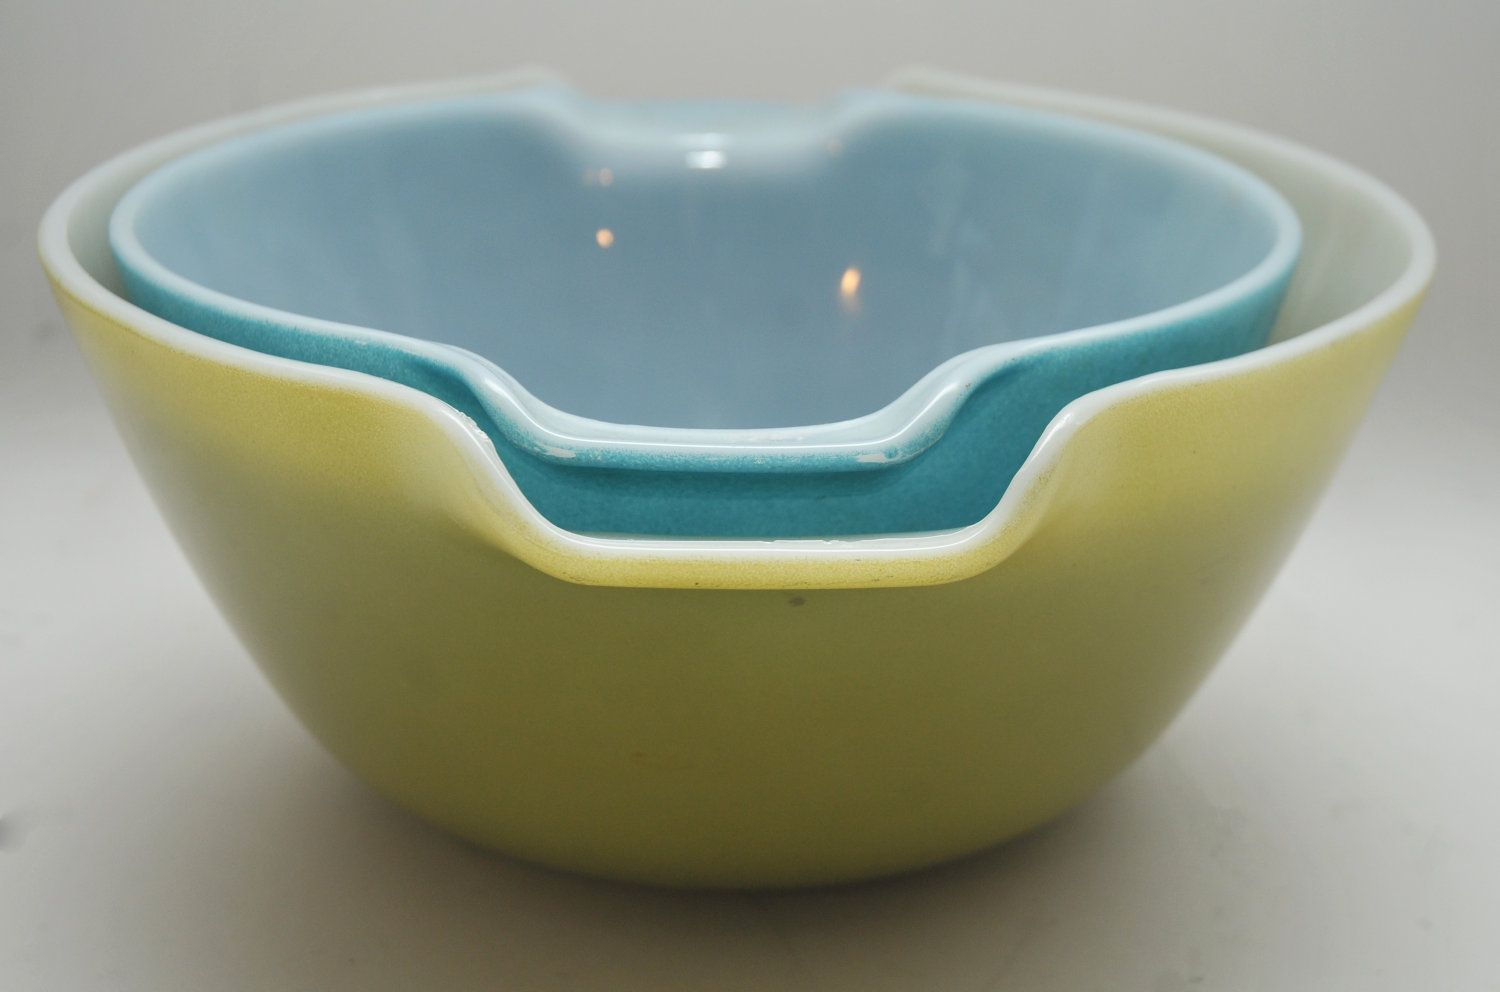 PAIR of Vintage Mid Century Fire King Mixing Bowls 1950s ...